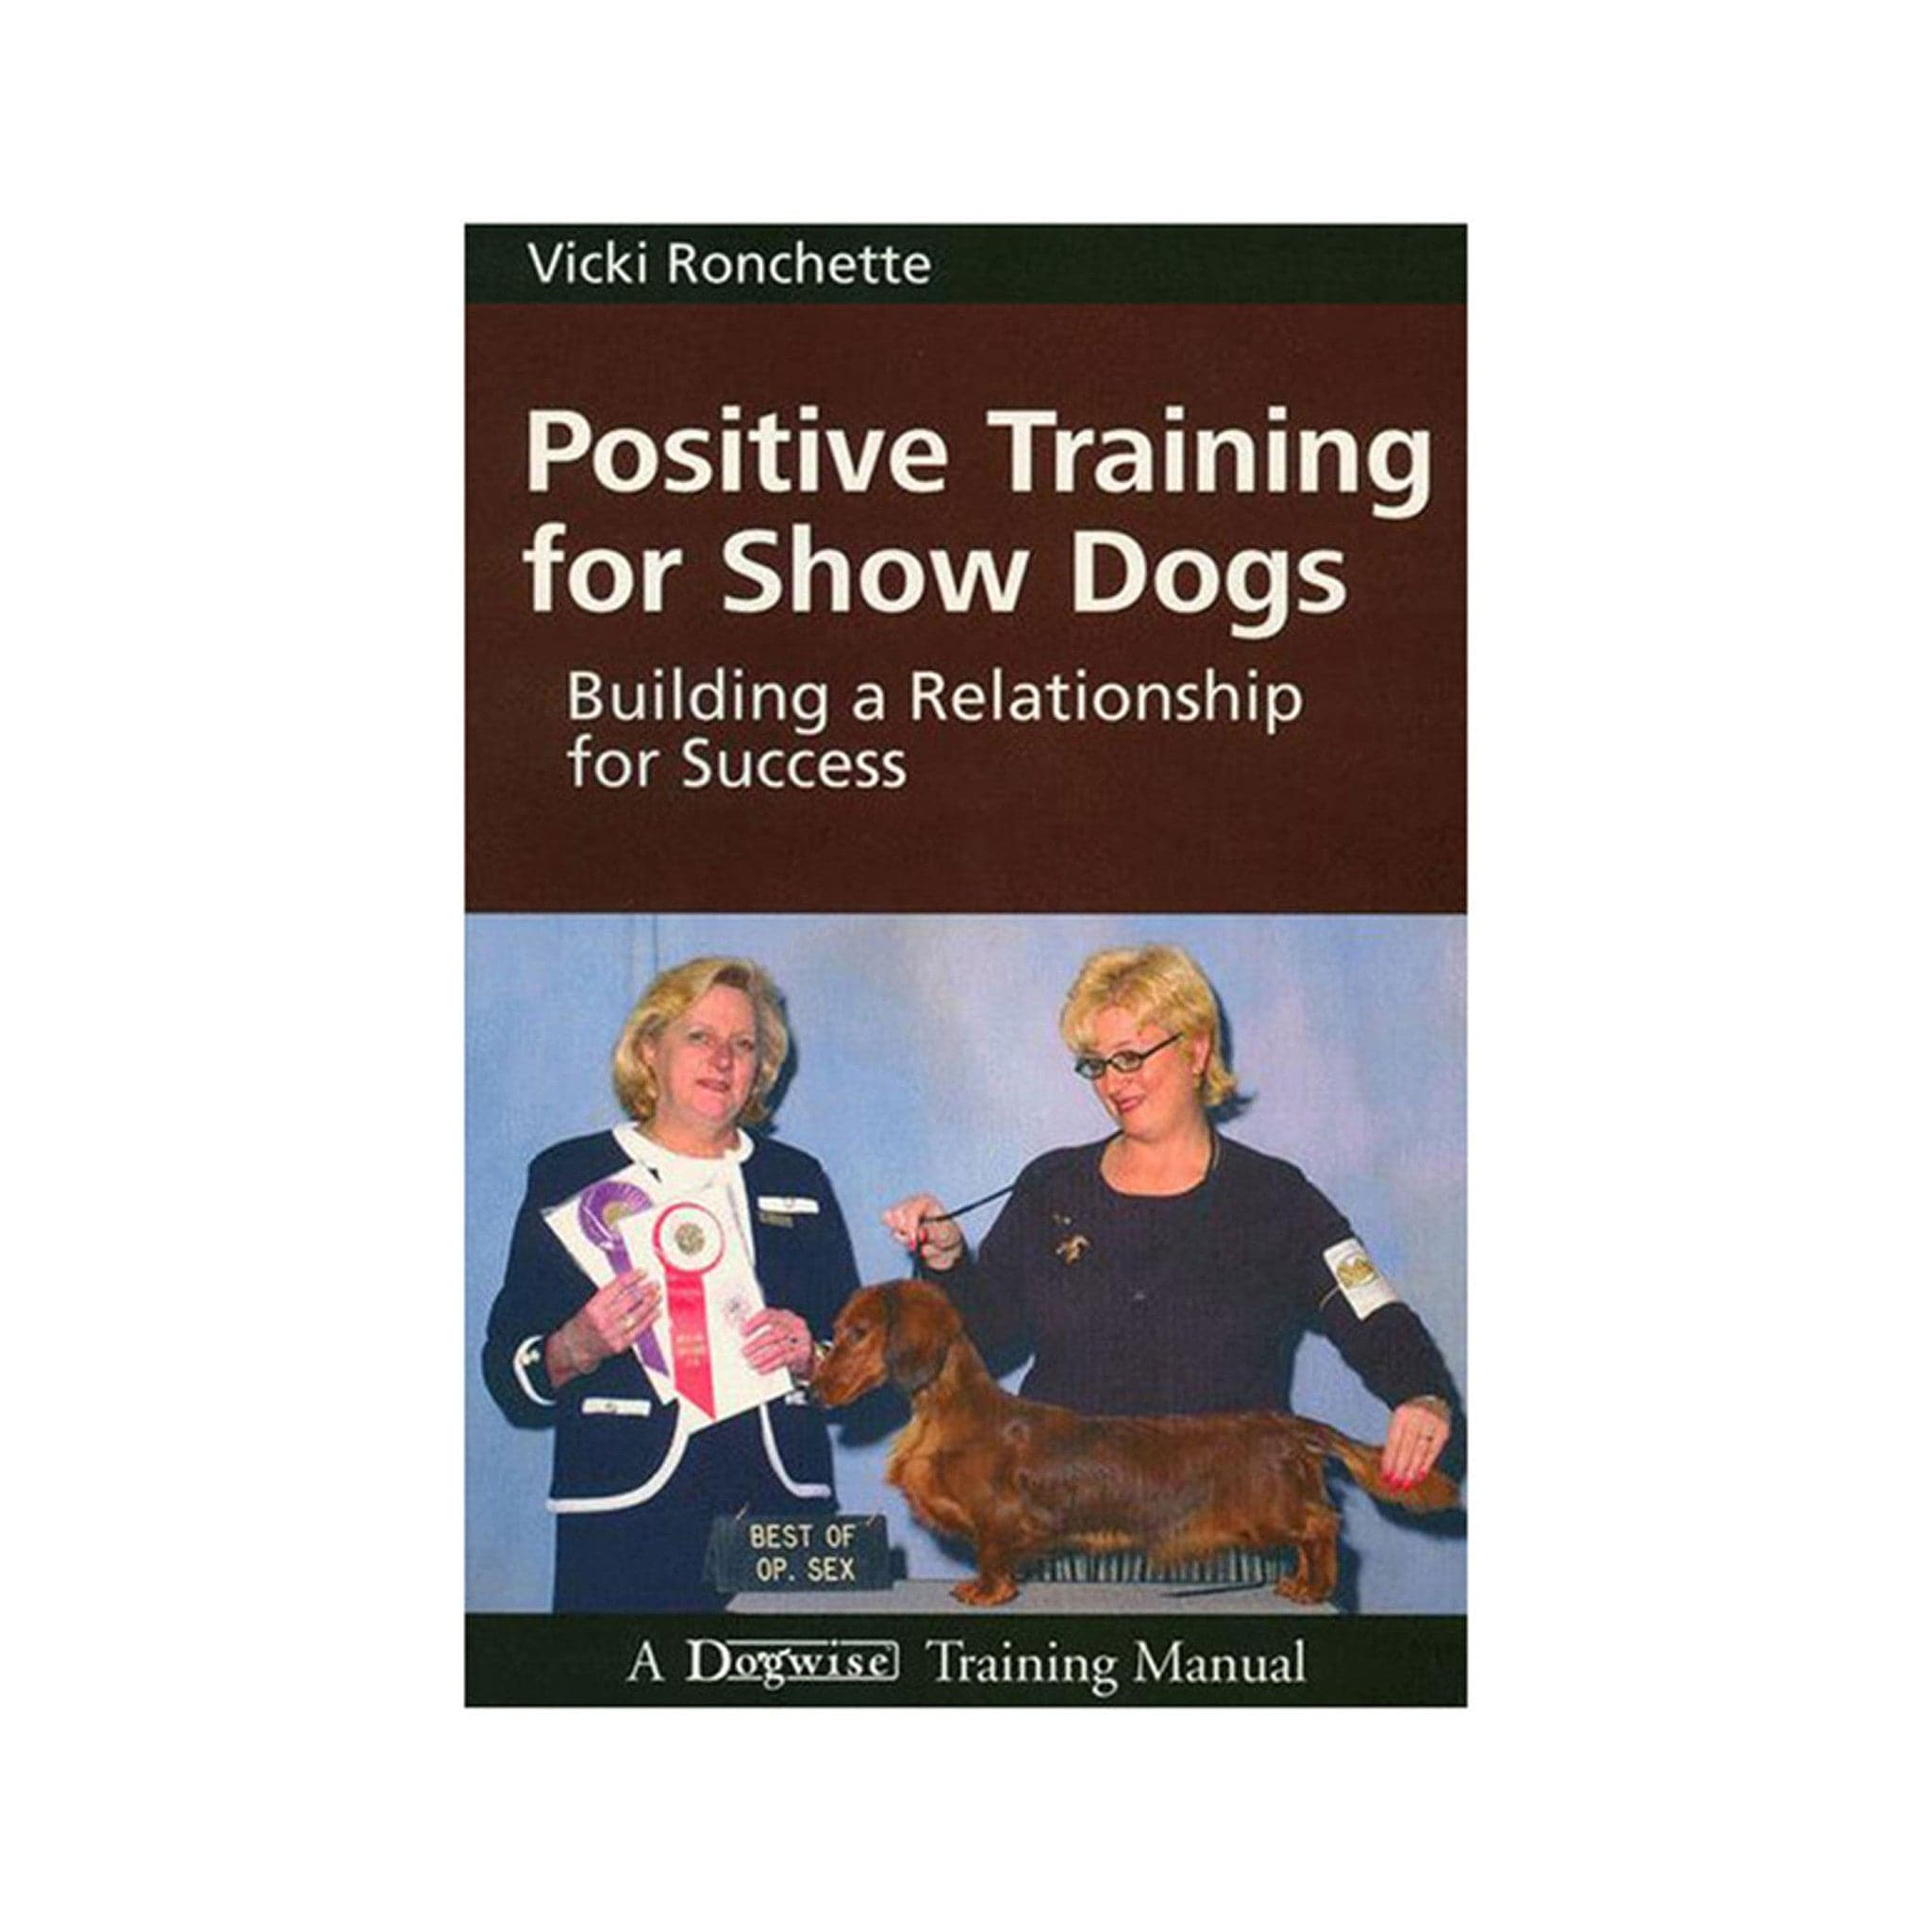 Positive Training for Show Dogs..Building a Relationship for Success